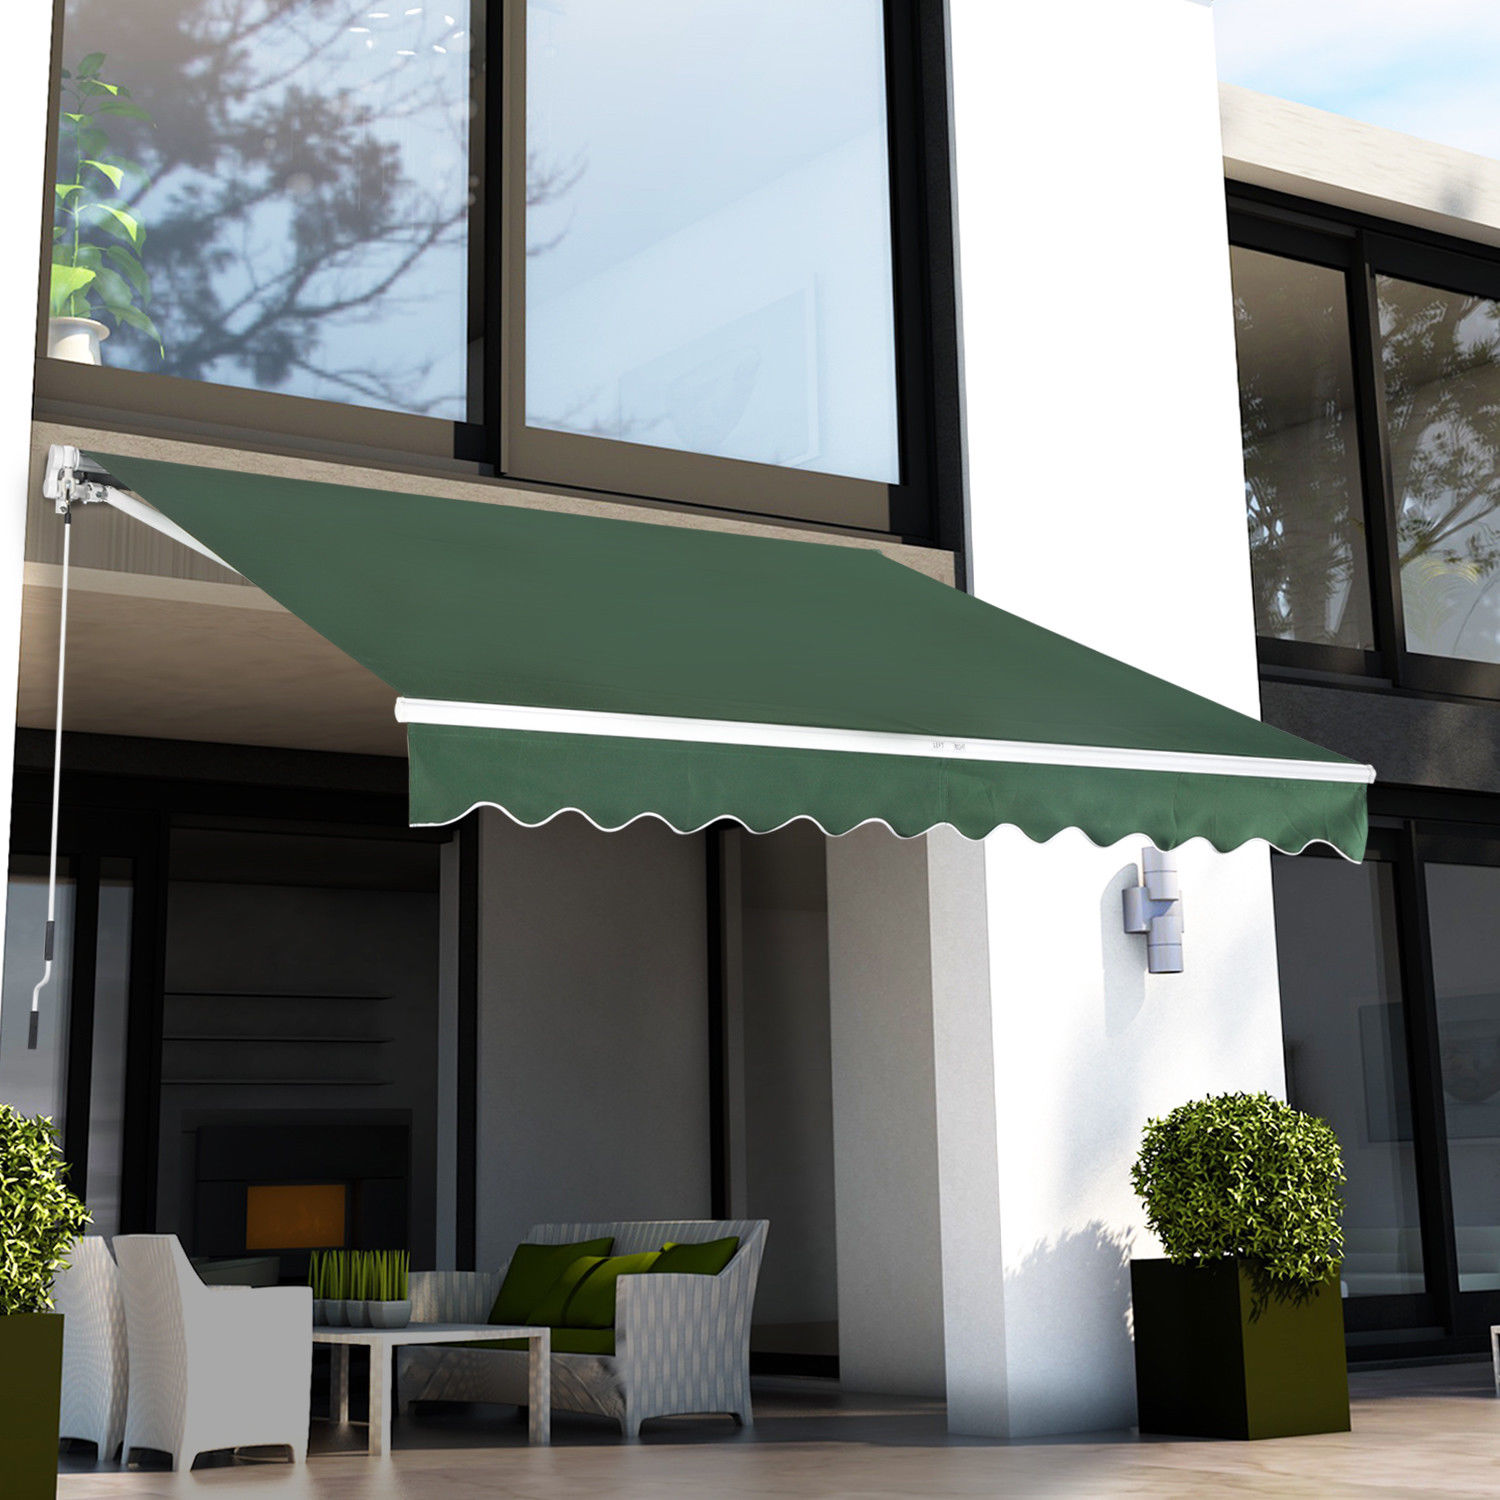 cover waterproof back patio front shelter outsunny living retractable awning manual rain canopy outdoor sun door shade